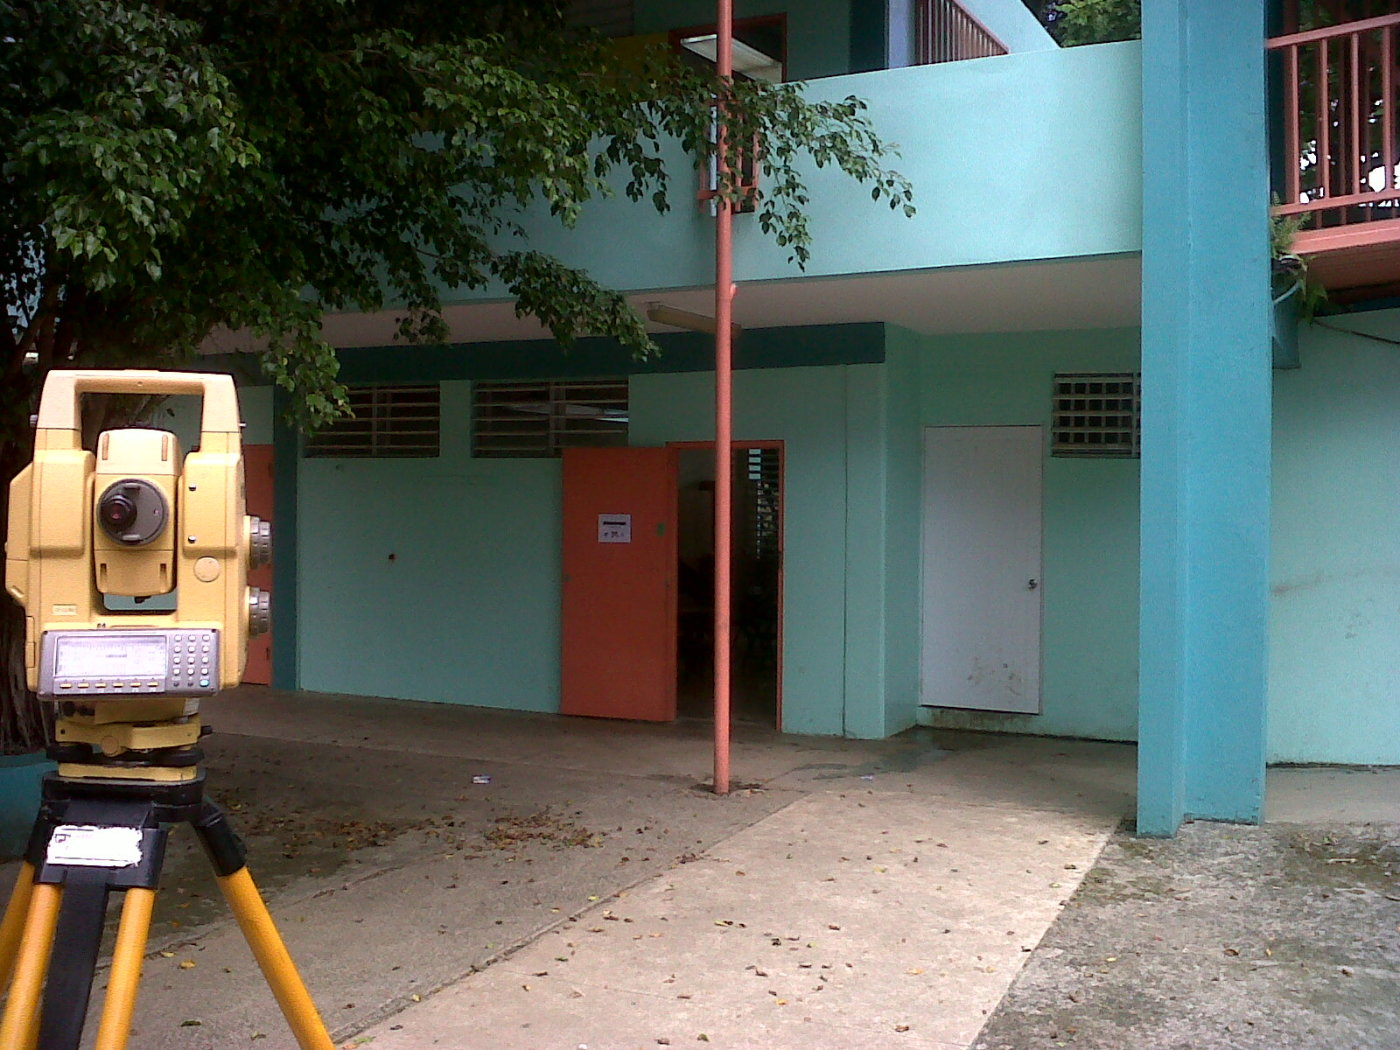 Surveying a school @ caguas PR